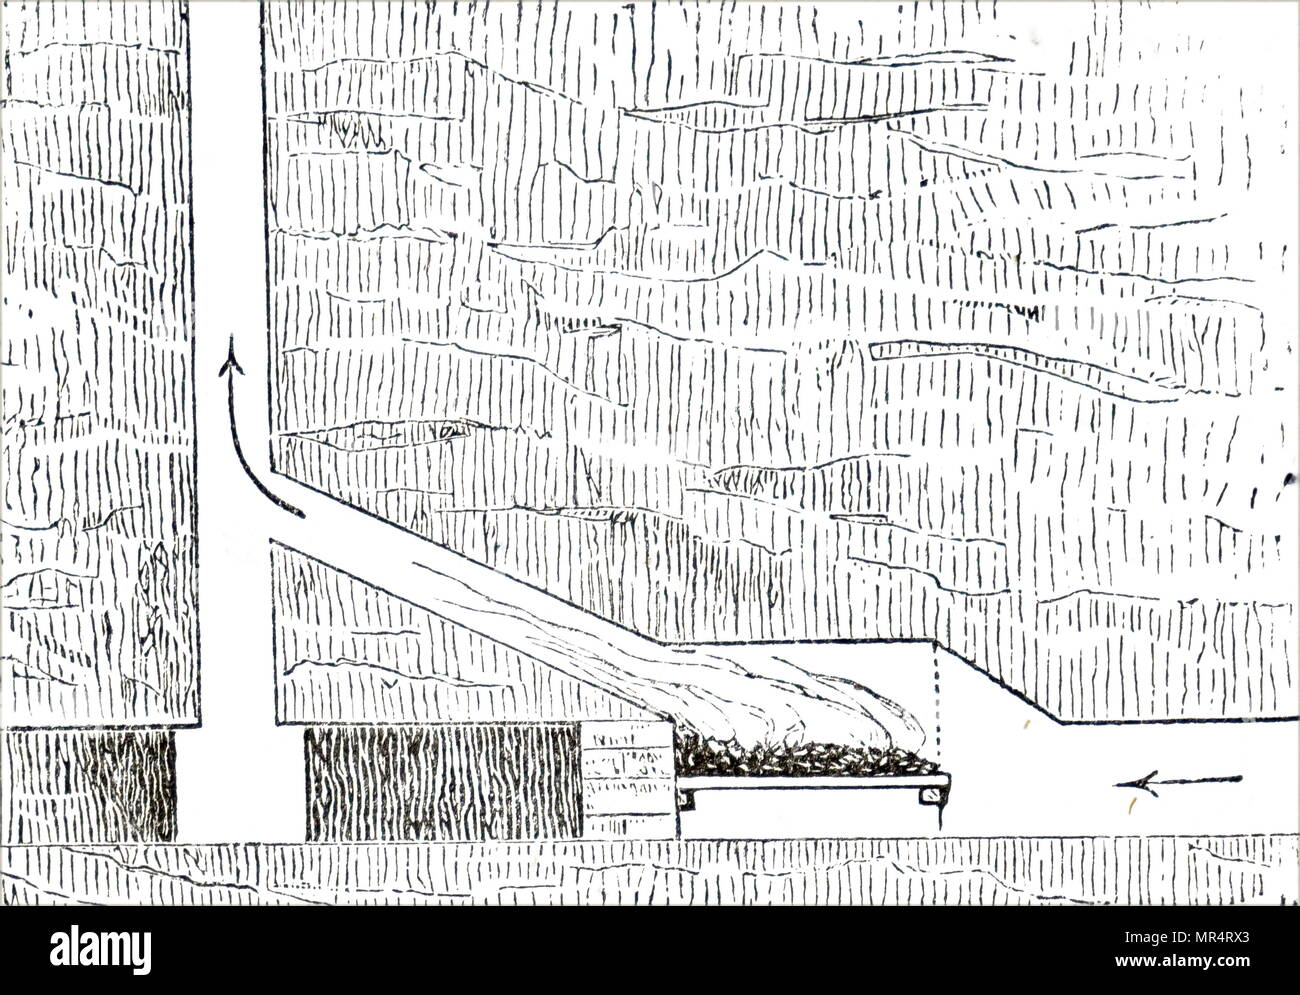 Sectional view of a furnace ventilation shaft typical of many coal mines. The hot air from the fire escaped up the shaft, drawing air down either the main shaft or other special ventilating shafts by means of the draft it created. In this way the otherwise still air at the bottom of the mine was renewed and the danger of a build-up  of firedamp lessened. Dated 19th century - Stock Image